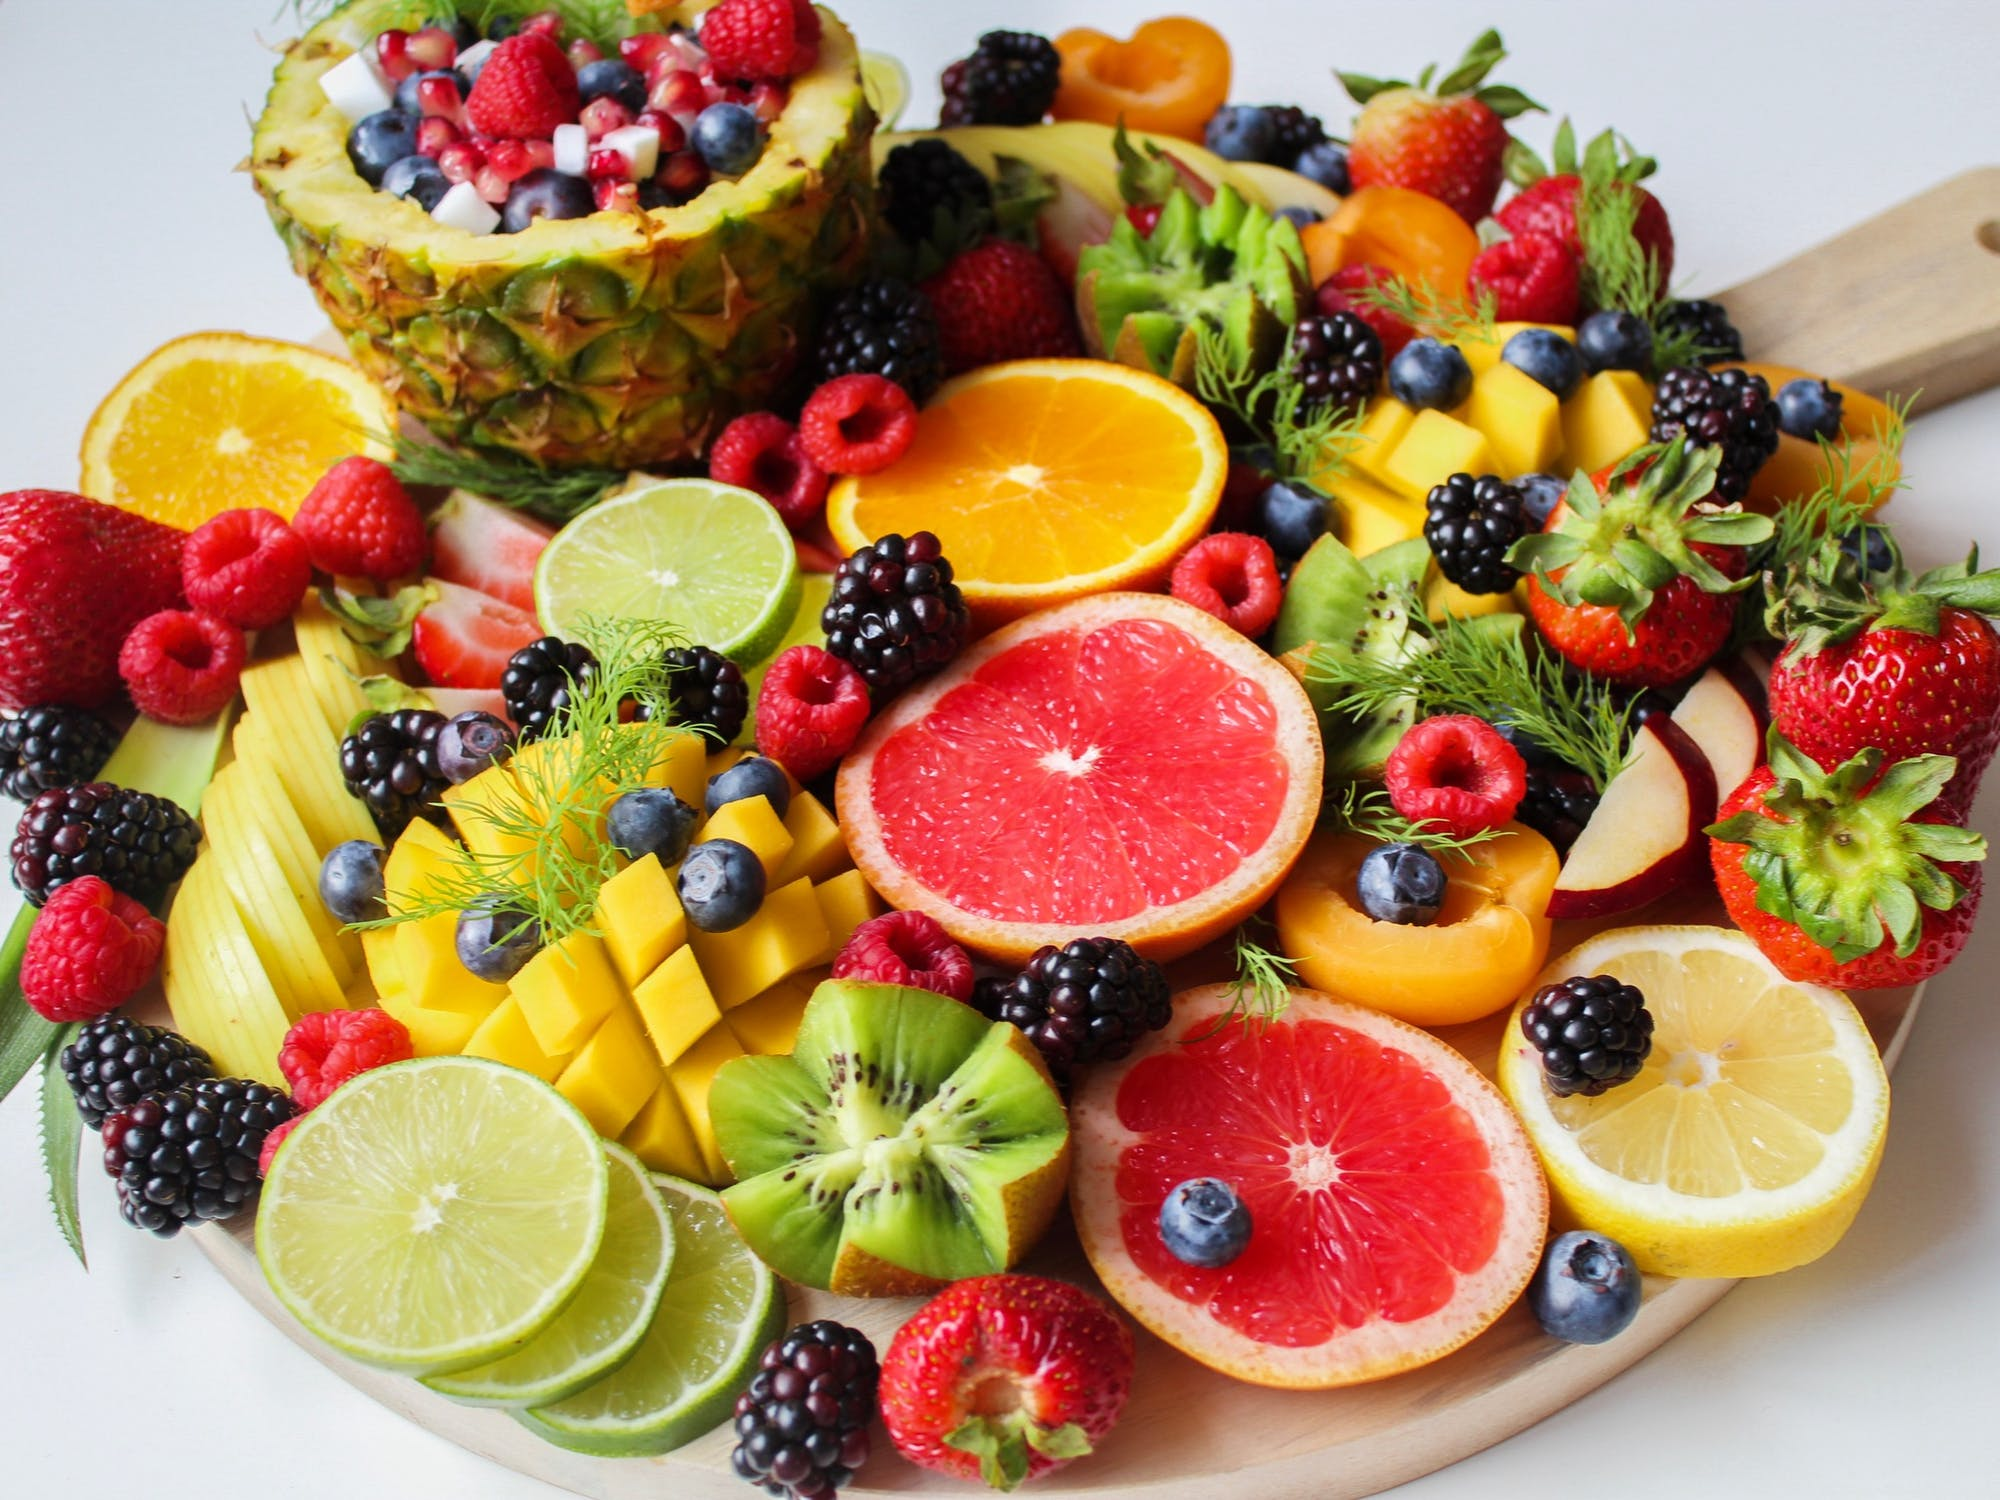 Colourful fruits (like lemon, berries, lime) full of vitamin C to boost immune systems